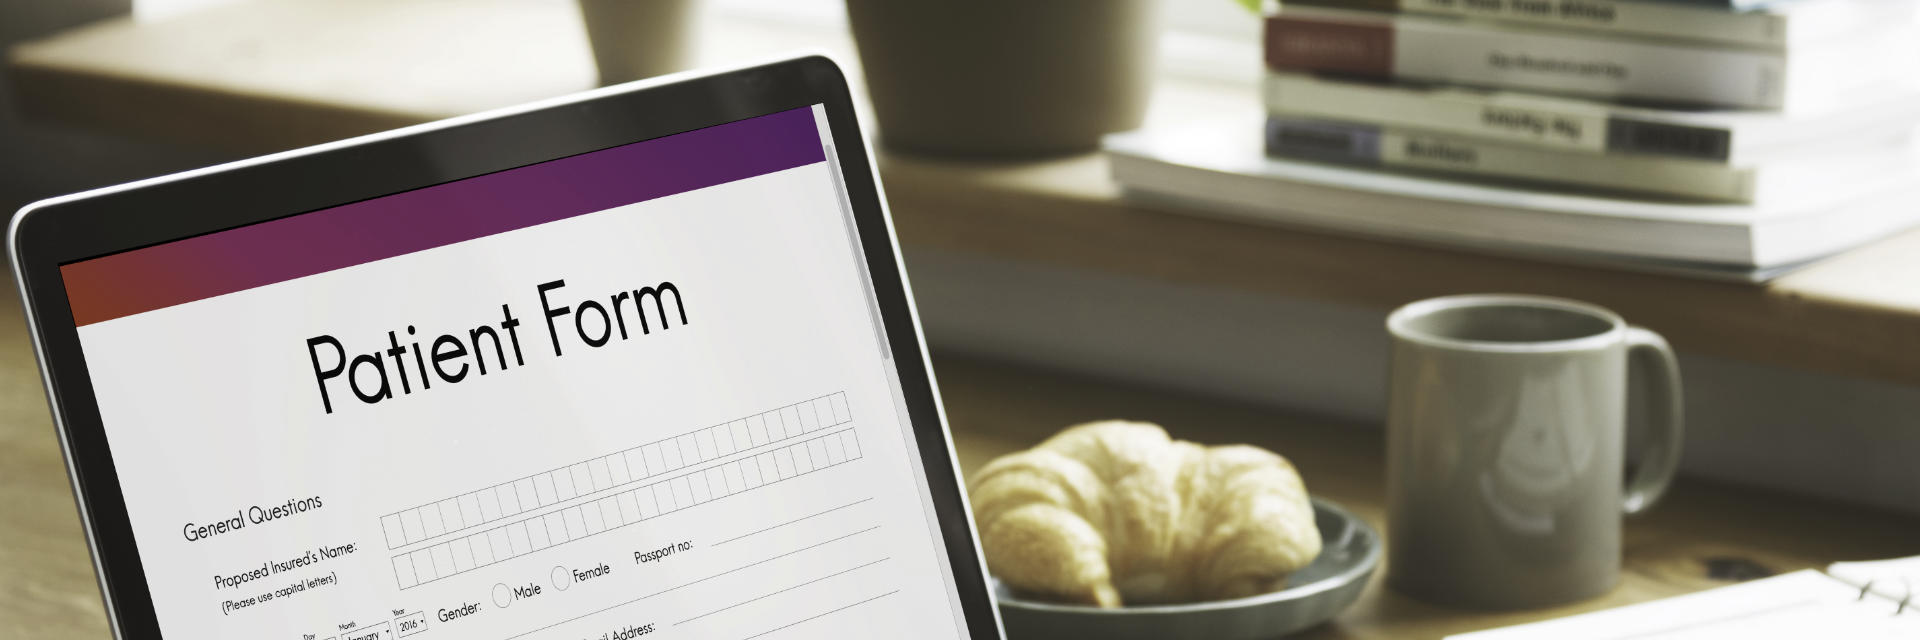 E-patient form displayed on a laptop screen.